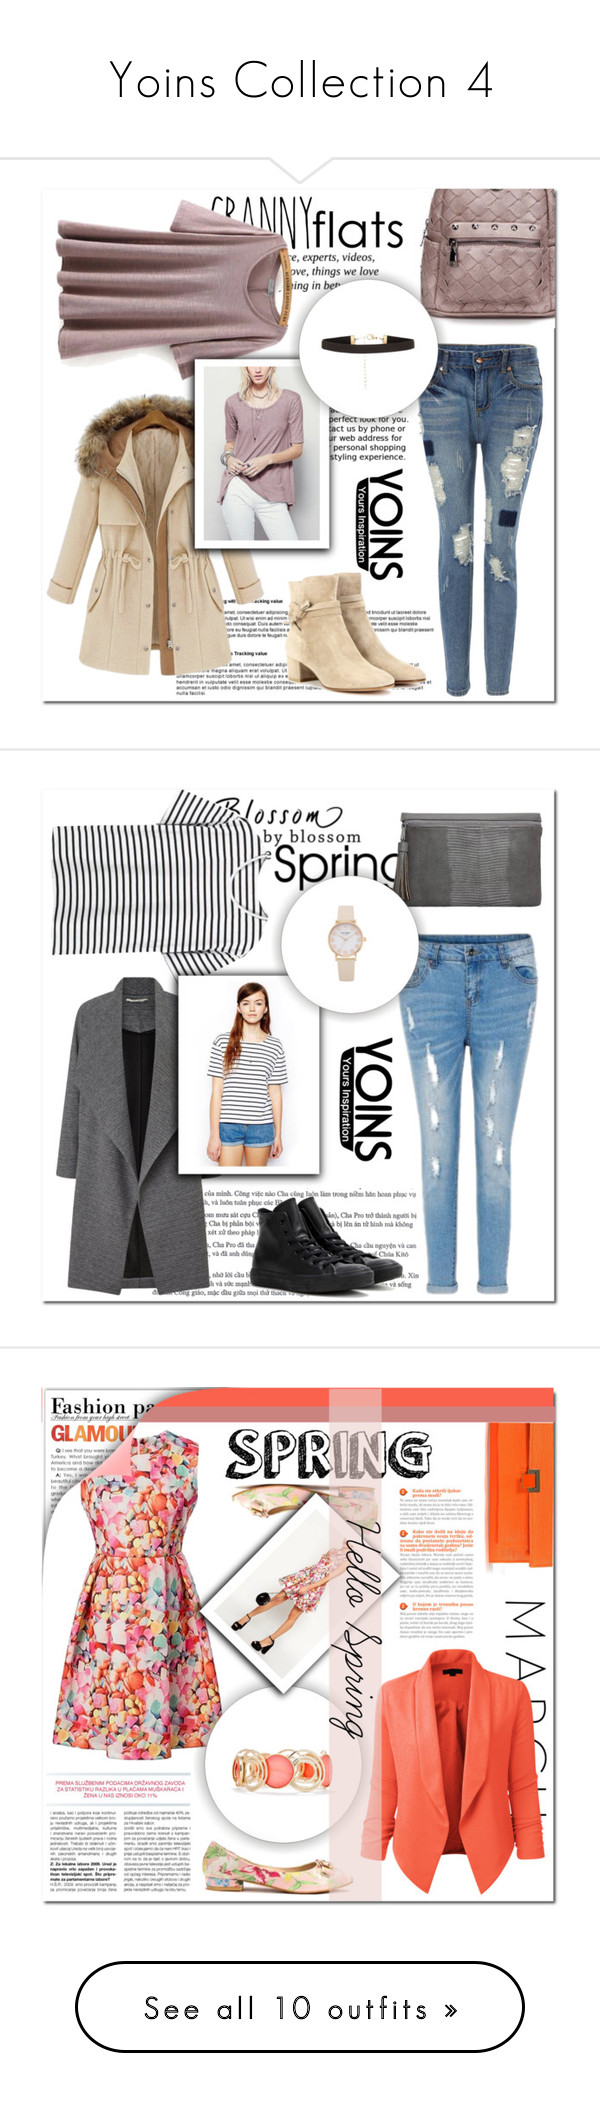 """""""Yoins Collection 4"""" by mini-kitty ❤ liked on Polyvore featuring Pussycat, Gianvito Rossi, yoins, Miss Selfridge, Converse, LE3NO, New Directions, Mansur Gavriel, Mulberry and BaubleBar"""